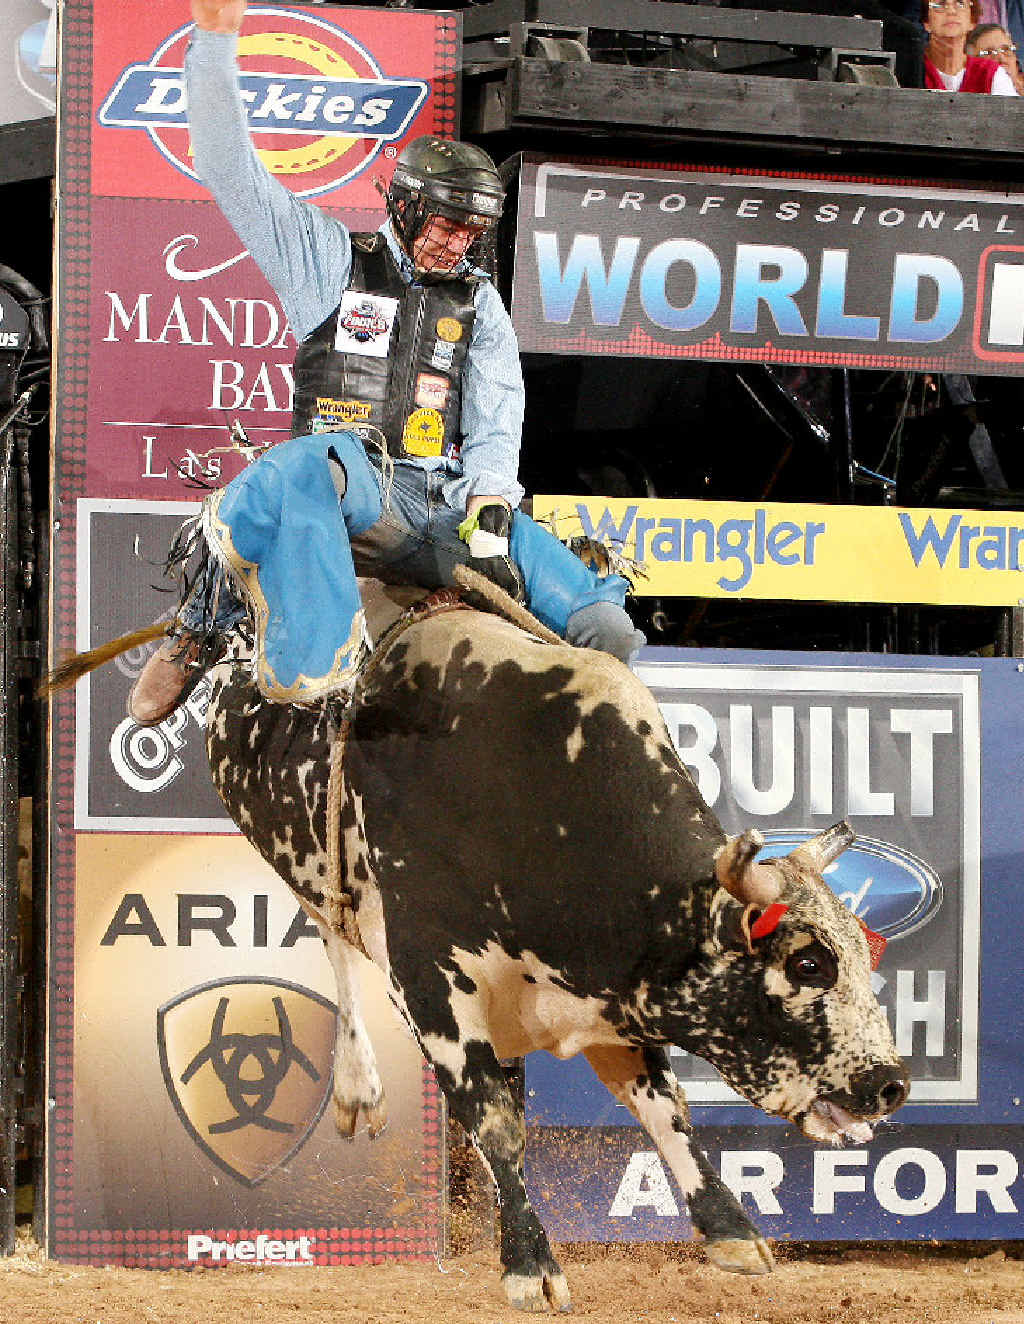 HANG ON: Australian bull riding champion David Kennedywill compete in the Kyogle Bull Ride this weekend.